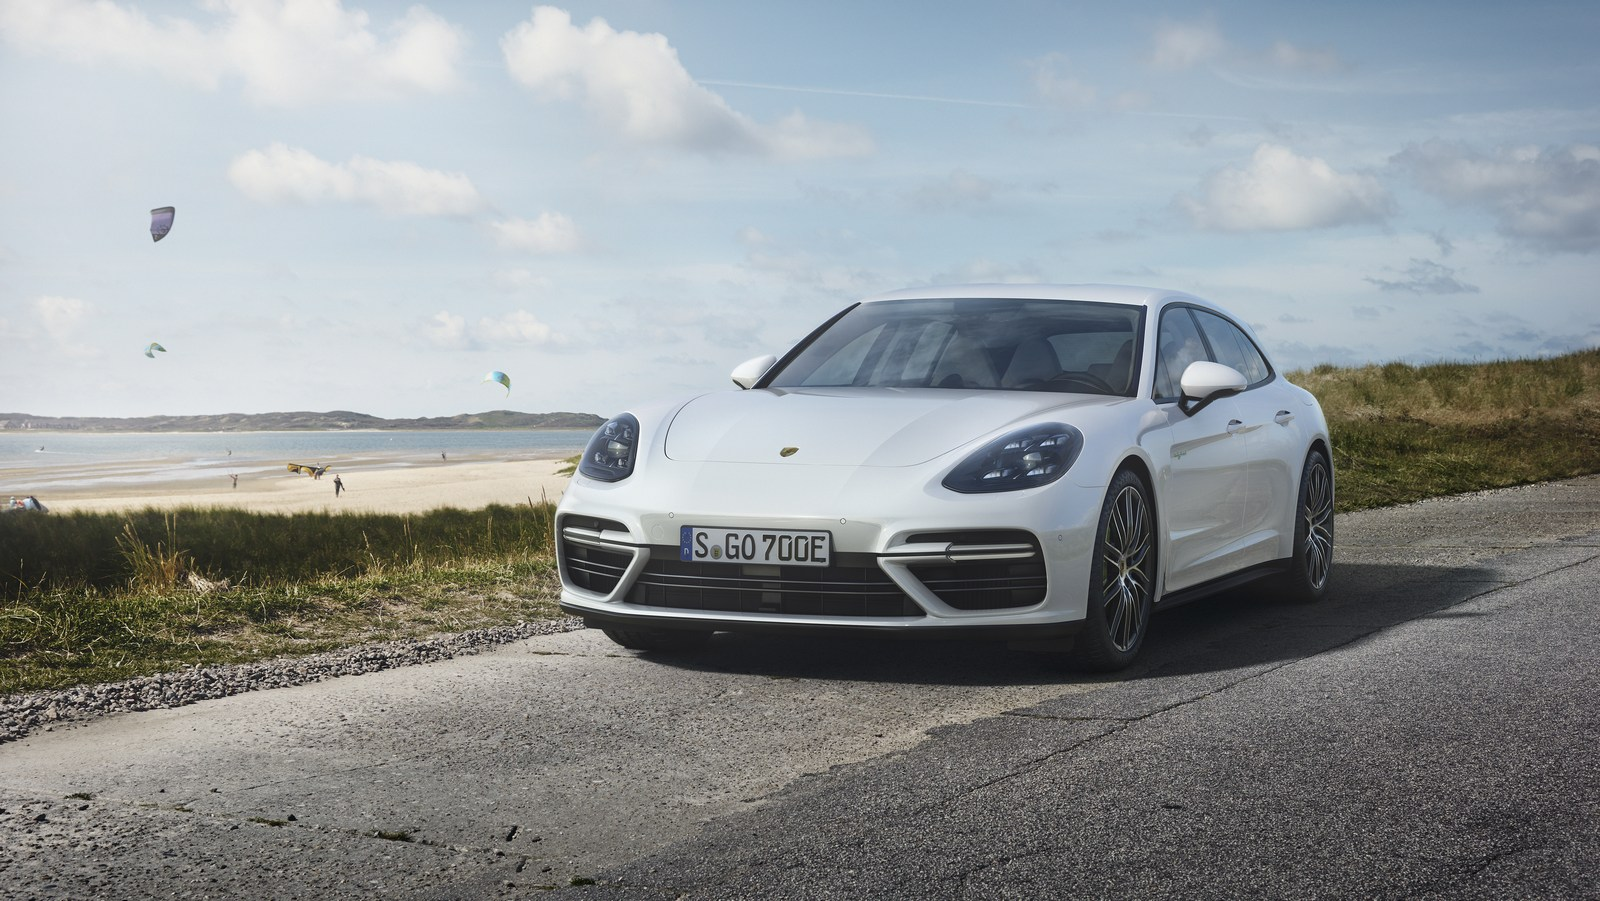 porsche panamera turbo s e hybrid sport turismo unveiled with 680 hp carscoops. Black Bedroom Furniture Sets. Home Design Ideas